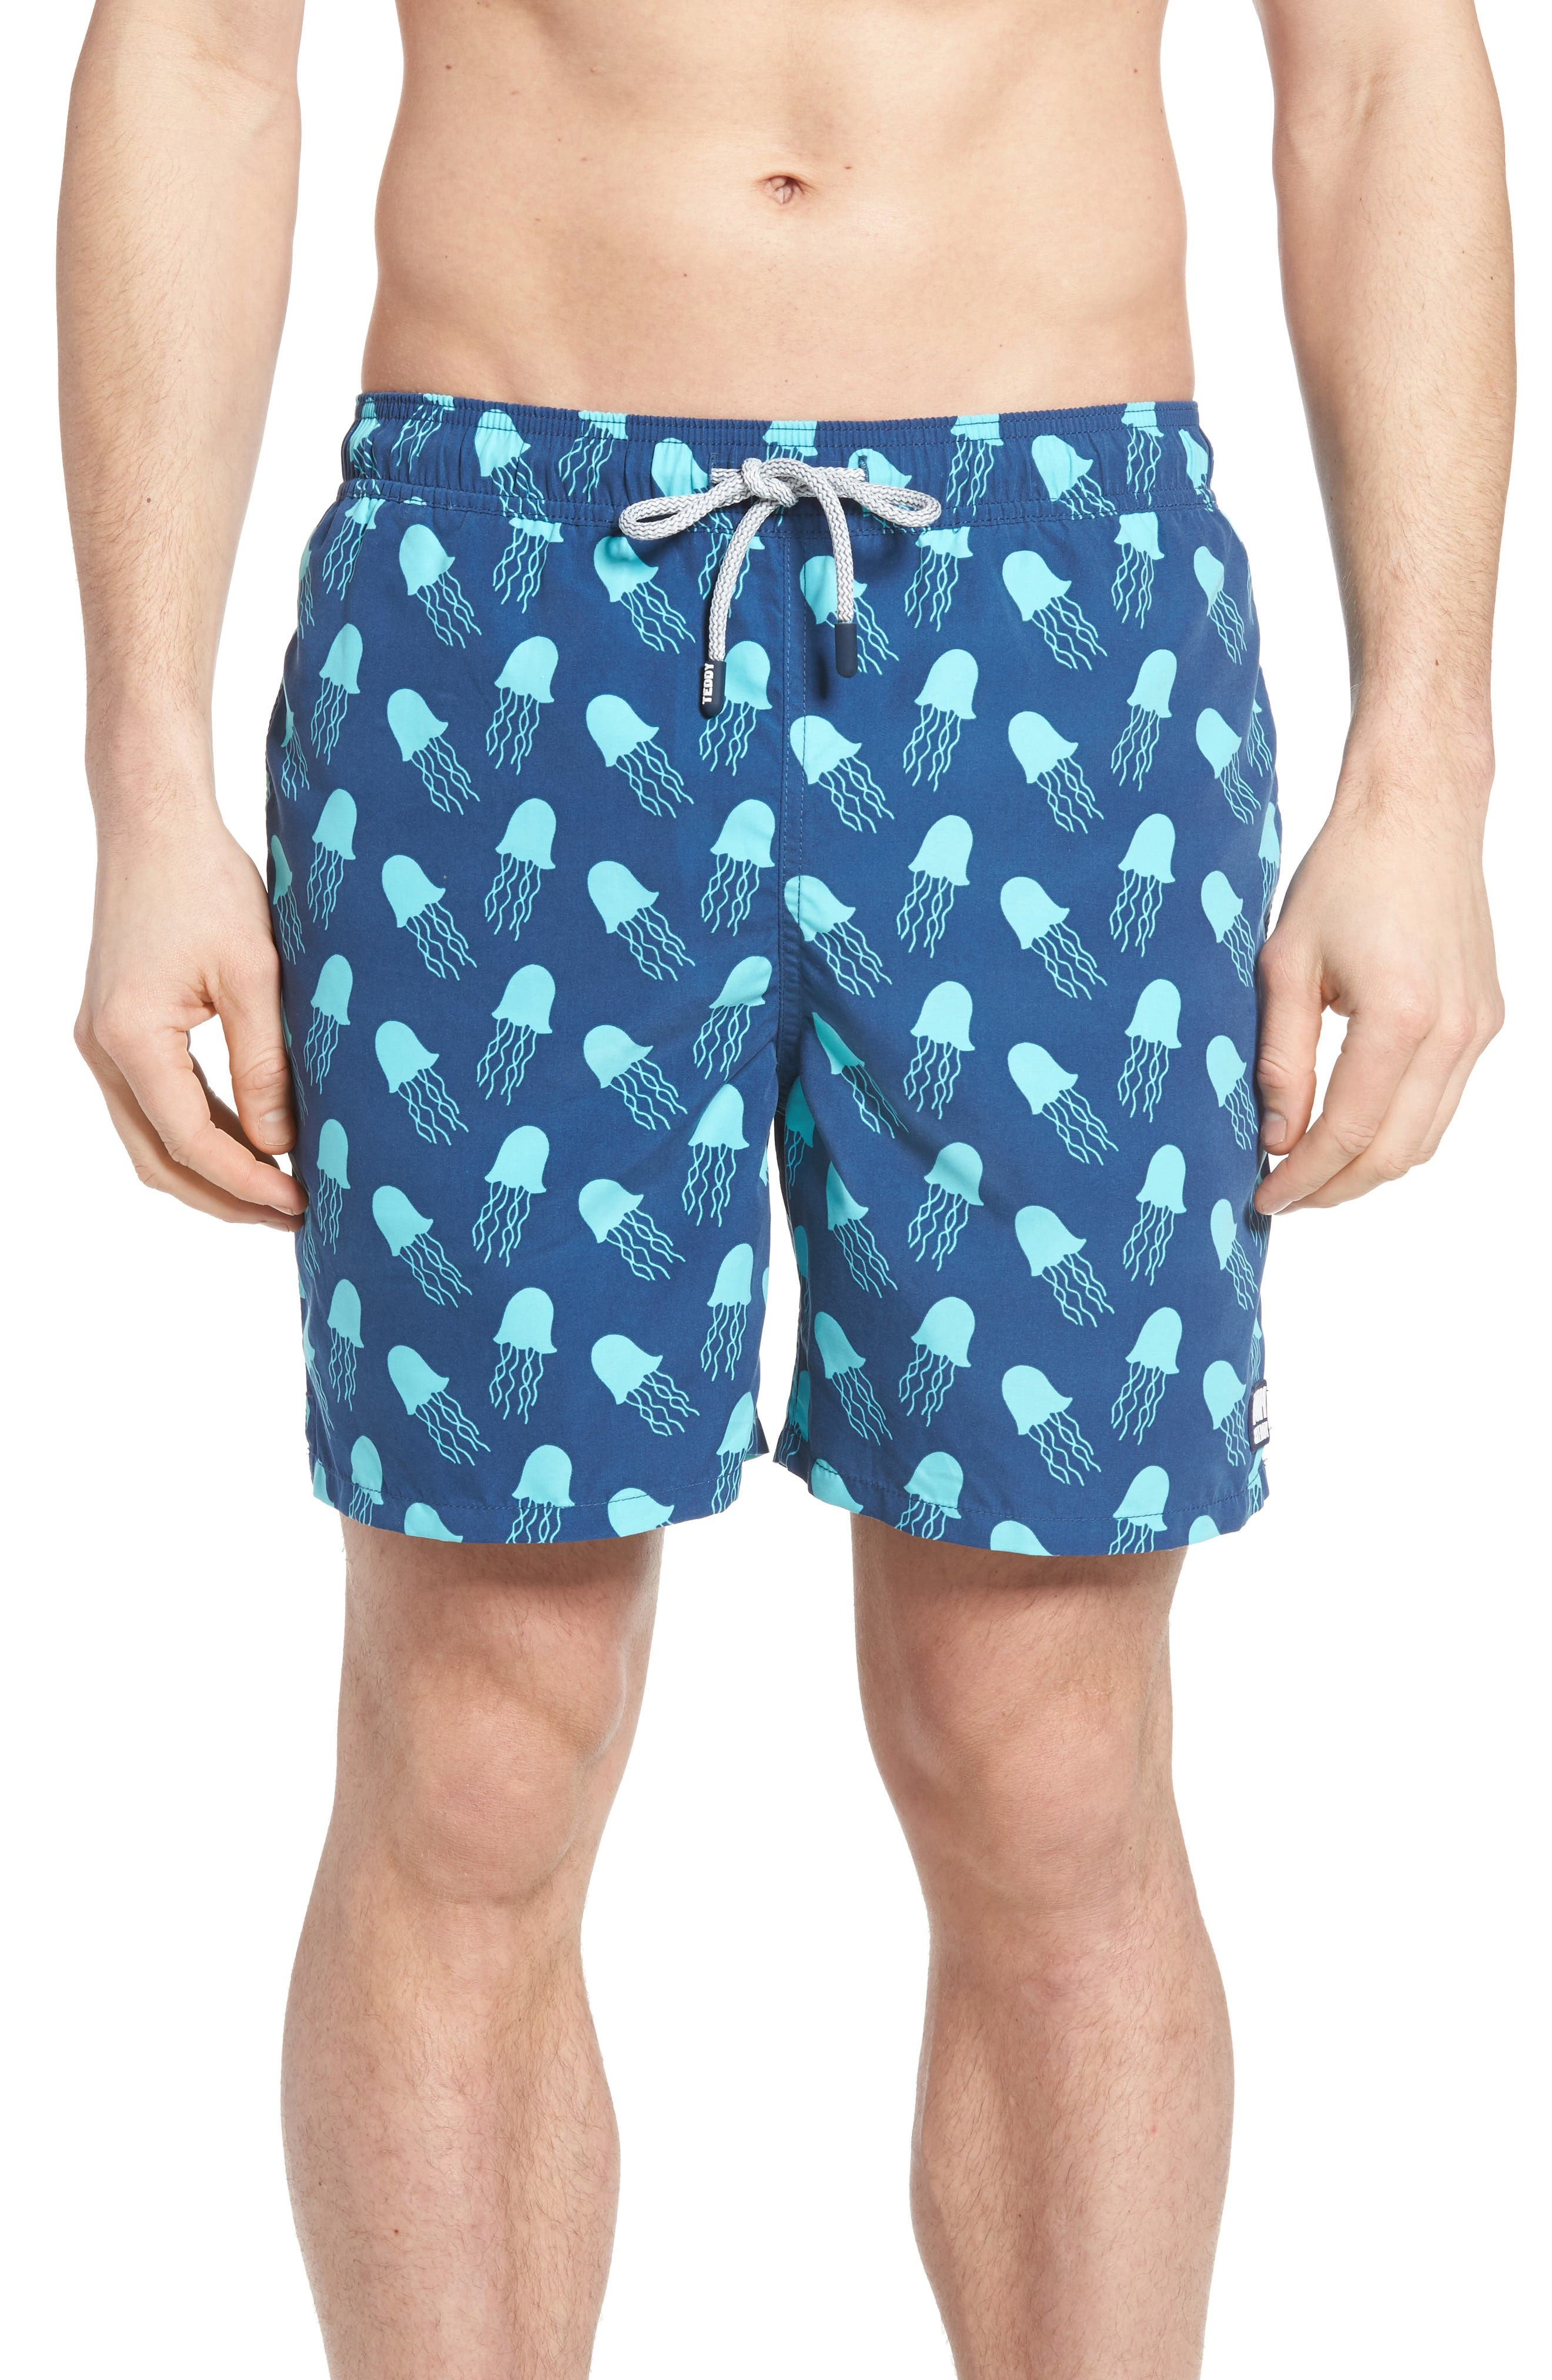 Jellyfish Print Swim Trunks,                             Main thumbnail 1, color,                             NAVY TURQUOISE